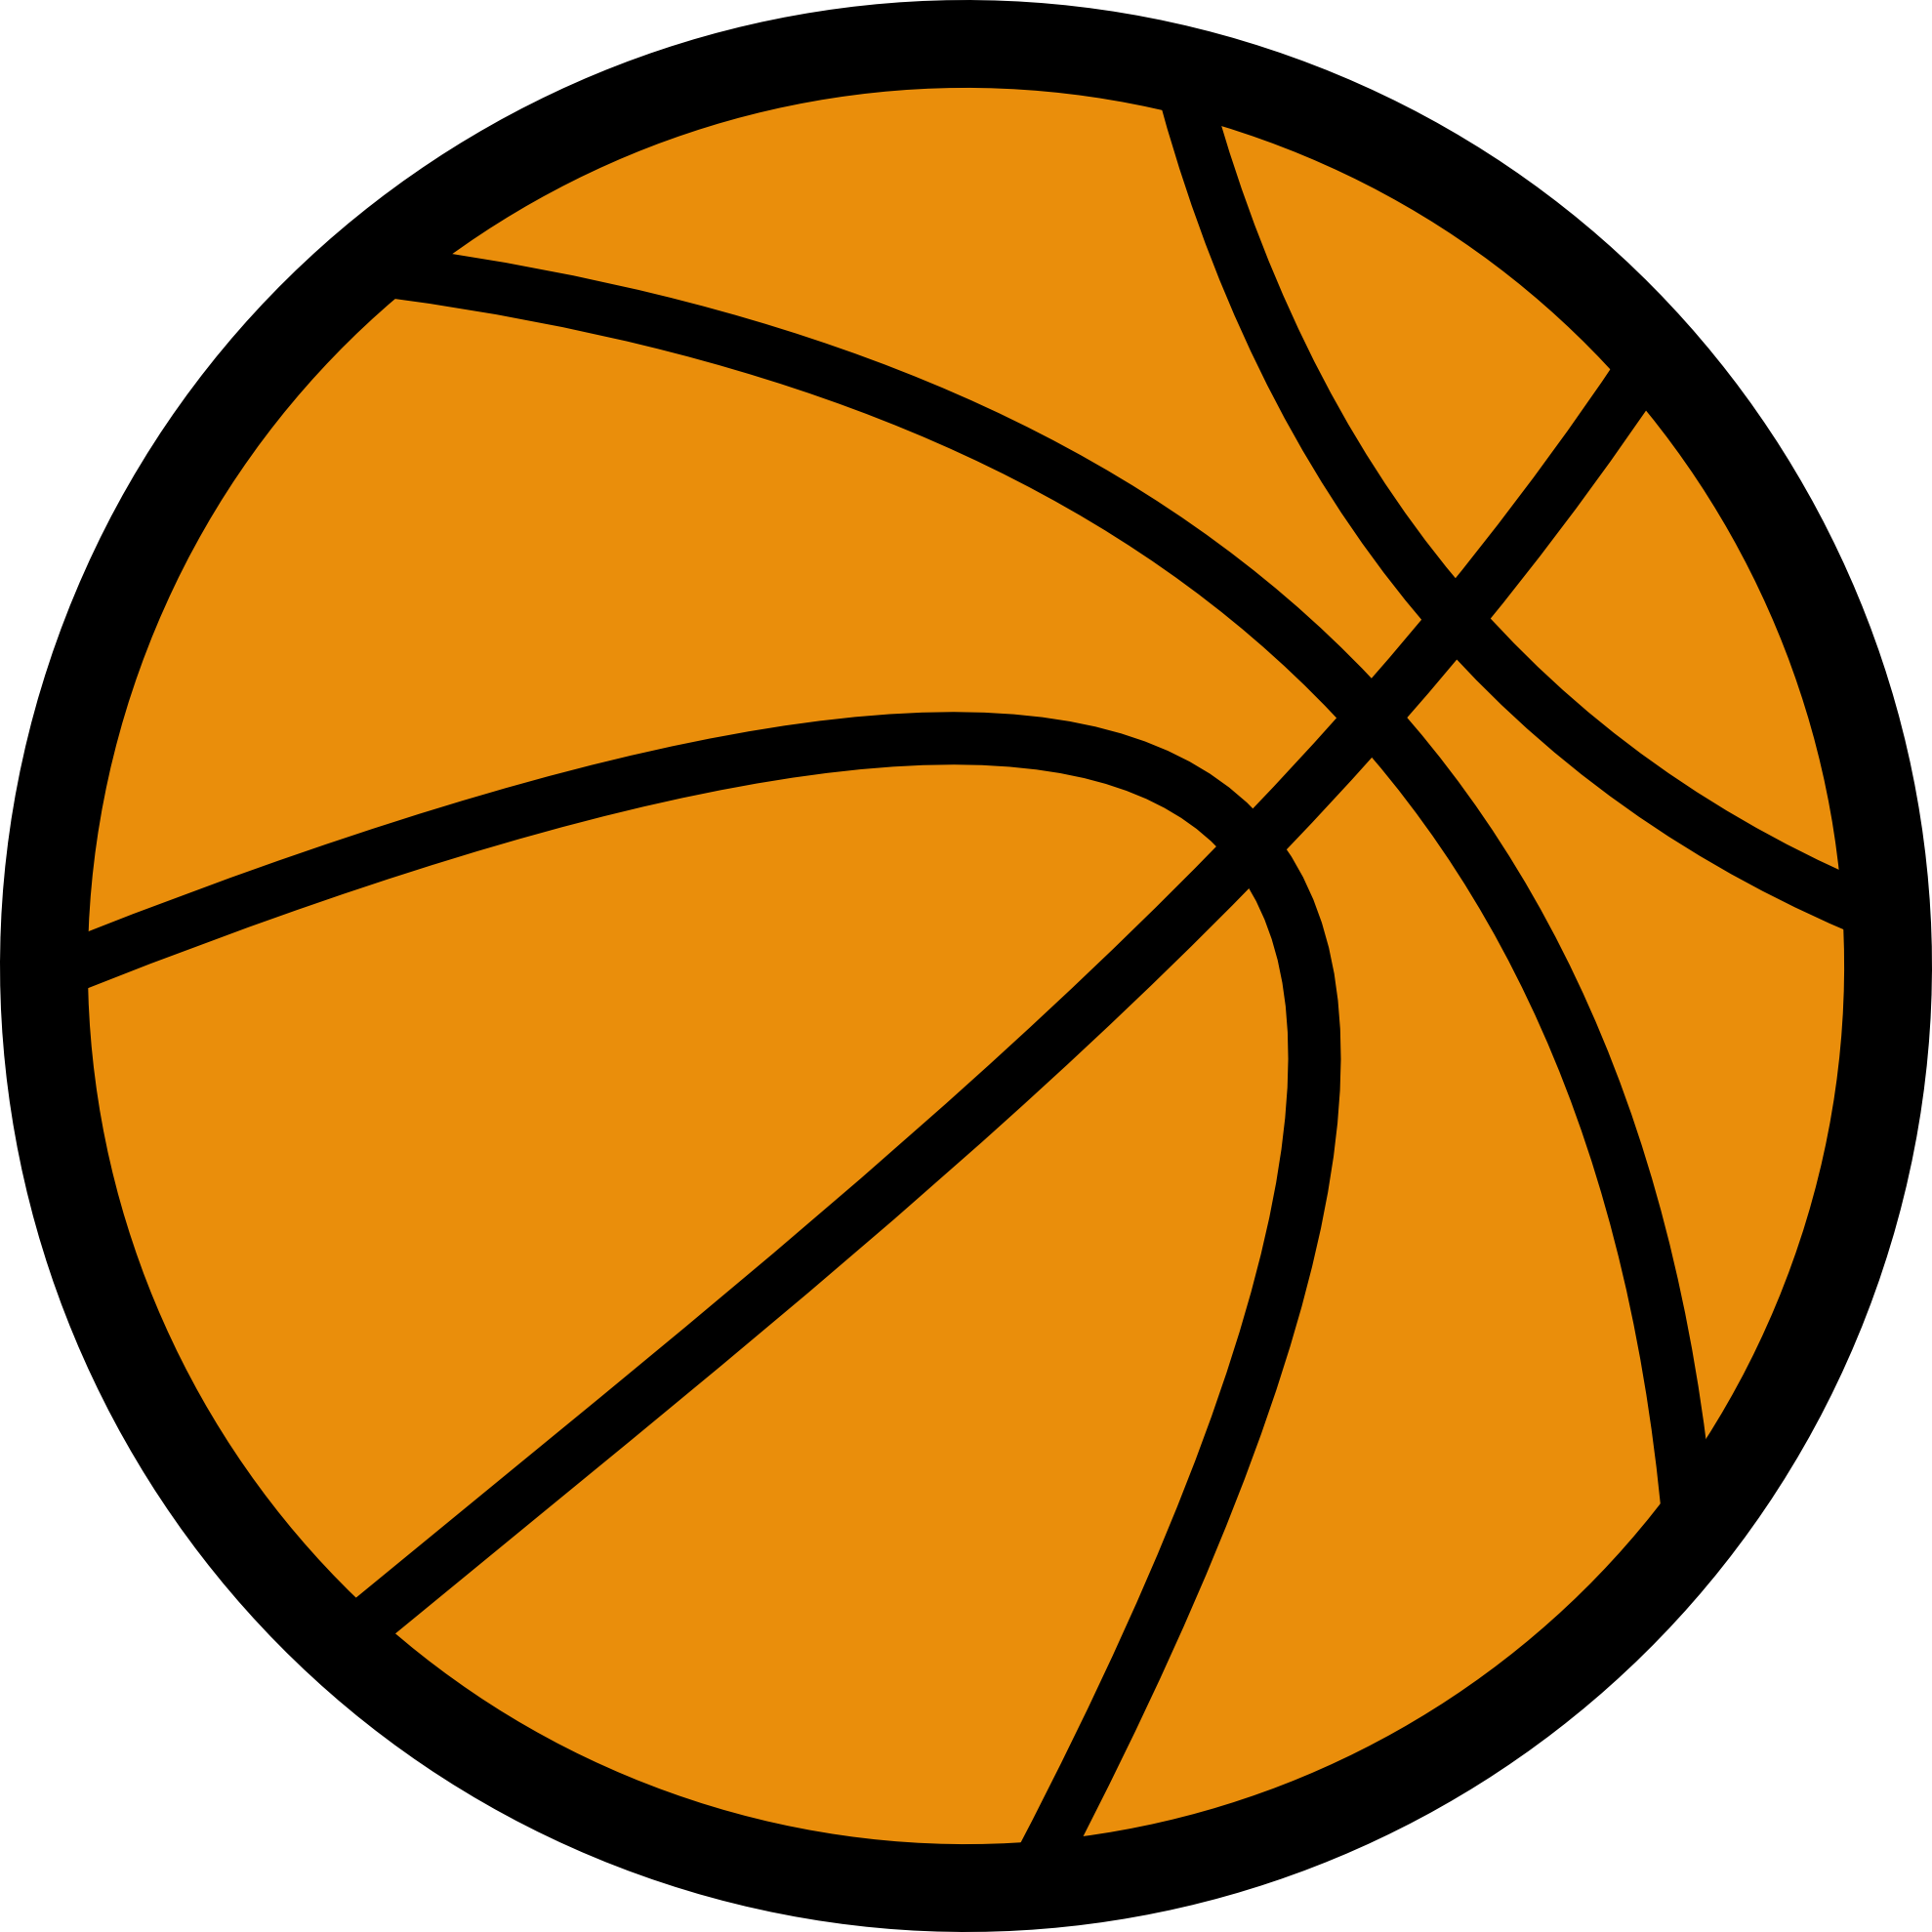 Free Basketball Clip Art